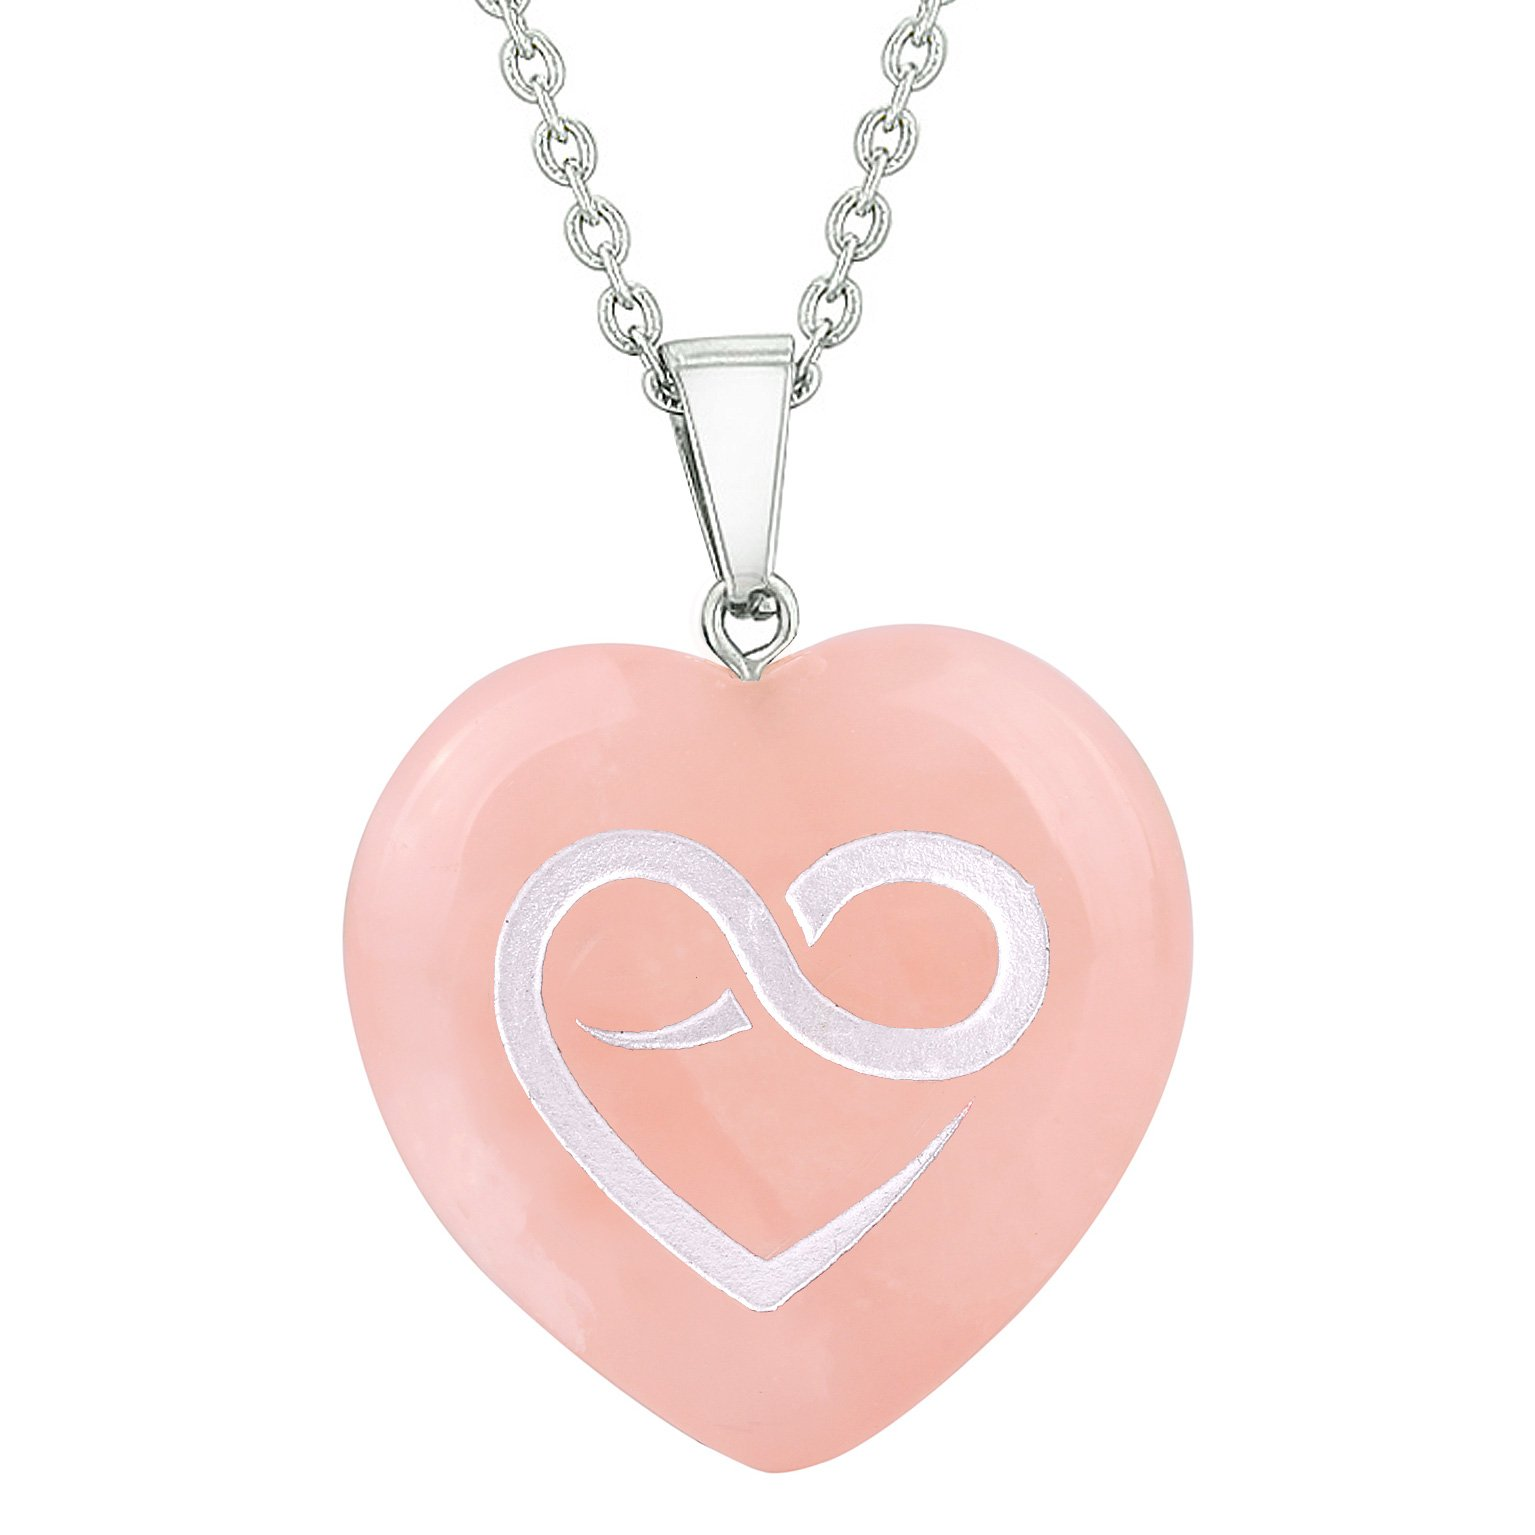 Love Talisman Heart Shaped Jewelry and Gifts